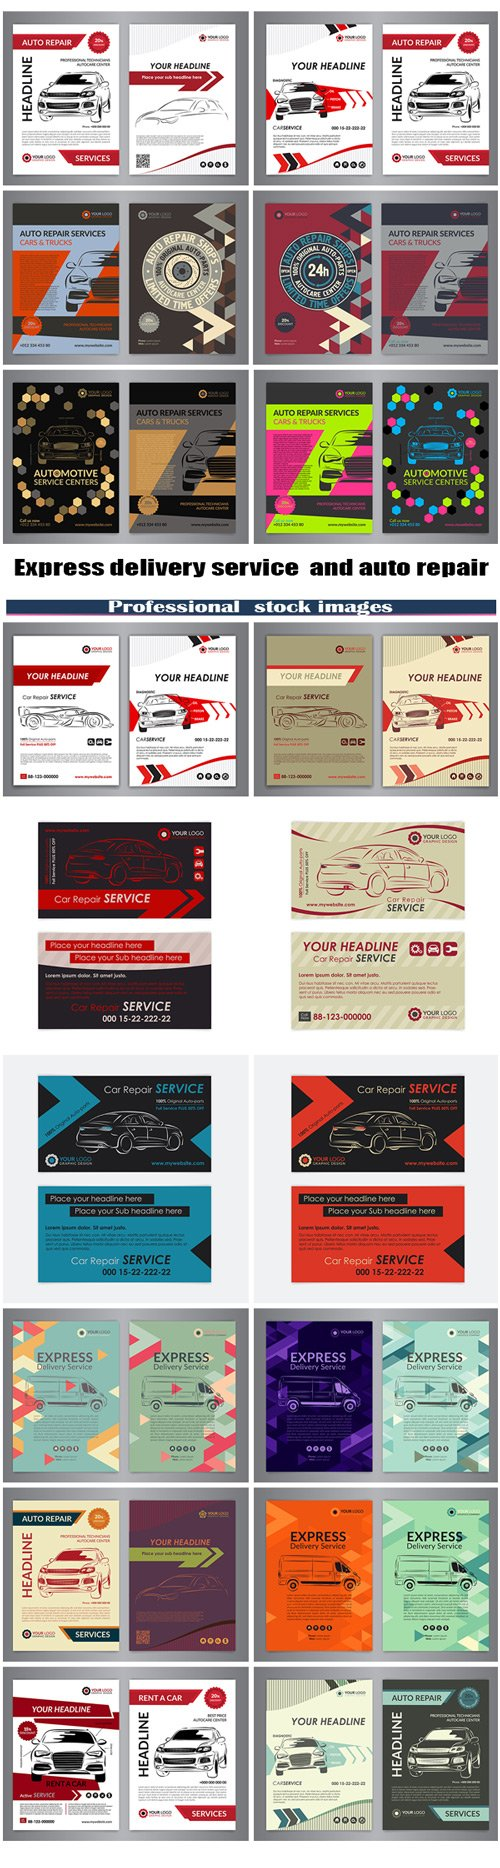 Express delivery service and auto repair business layout templates